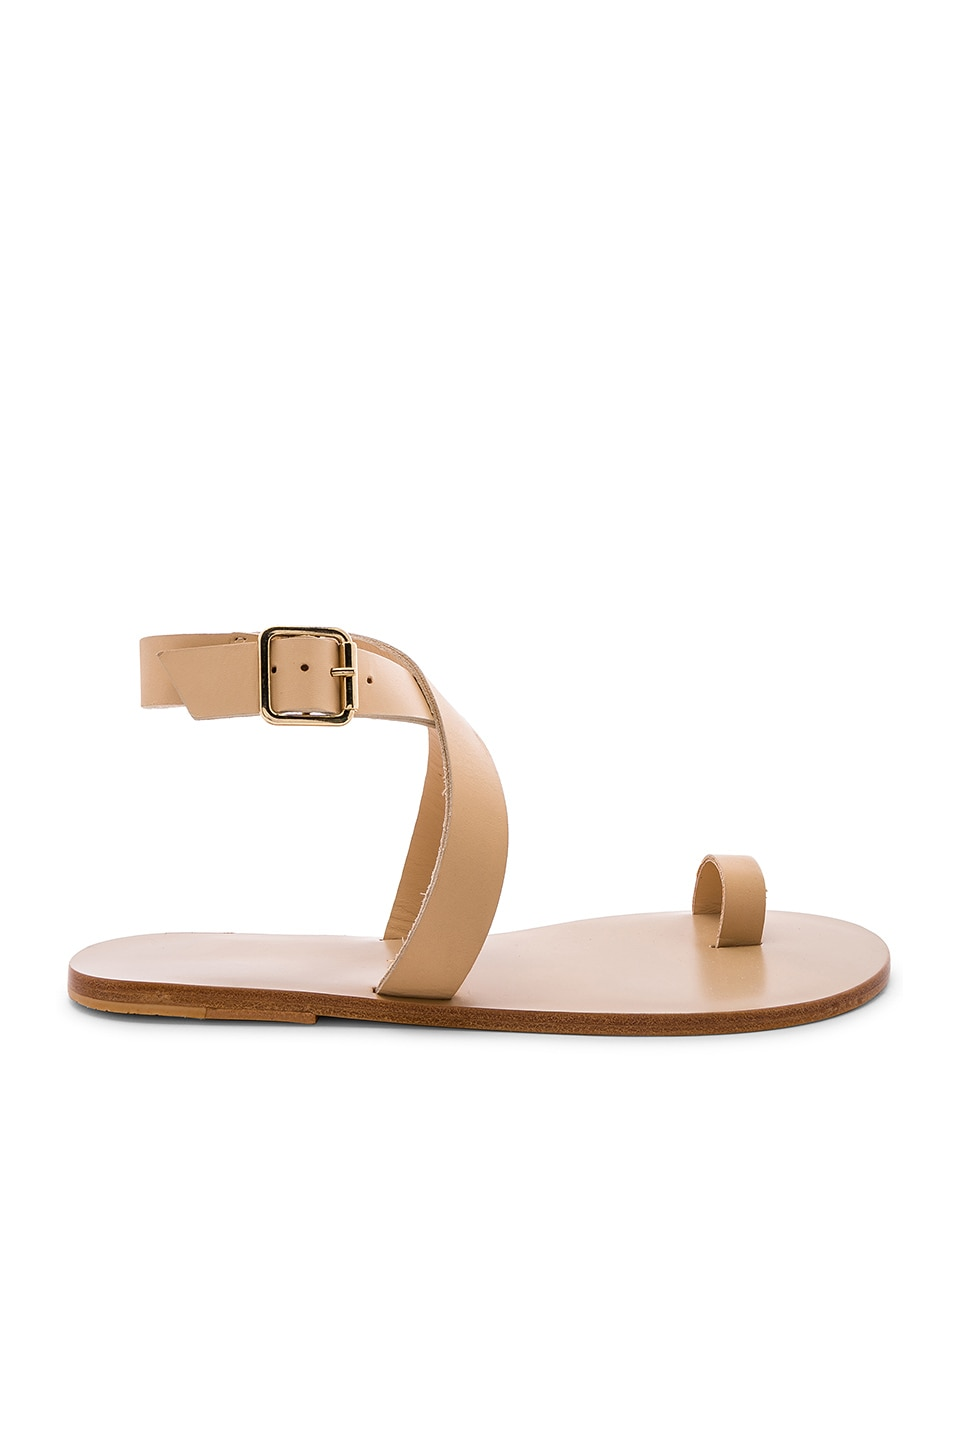 TKEES Nicole Sandal in Natural